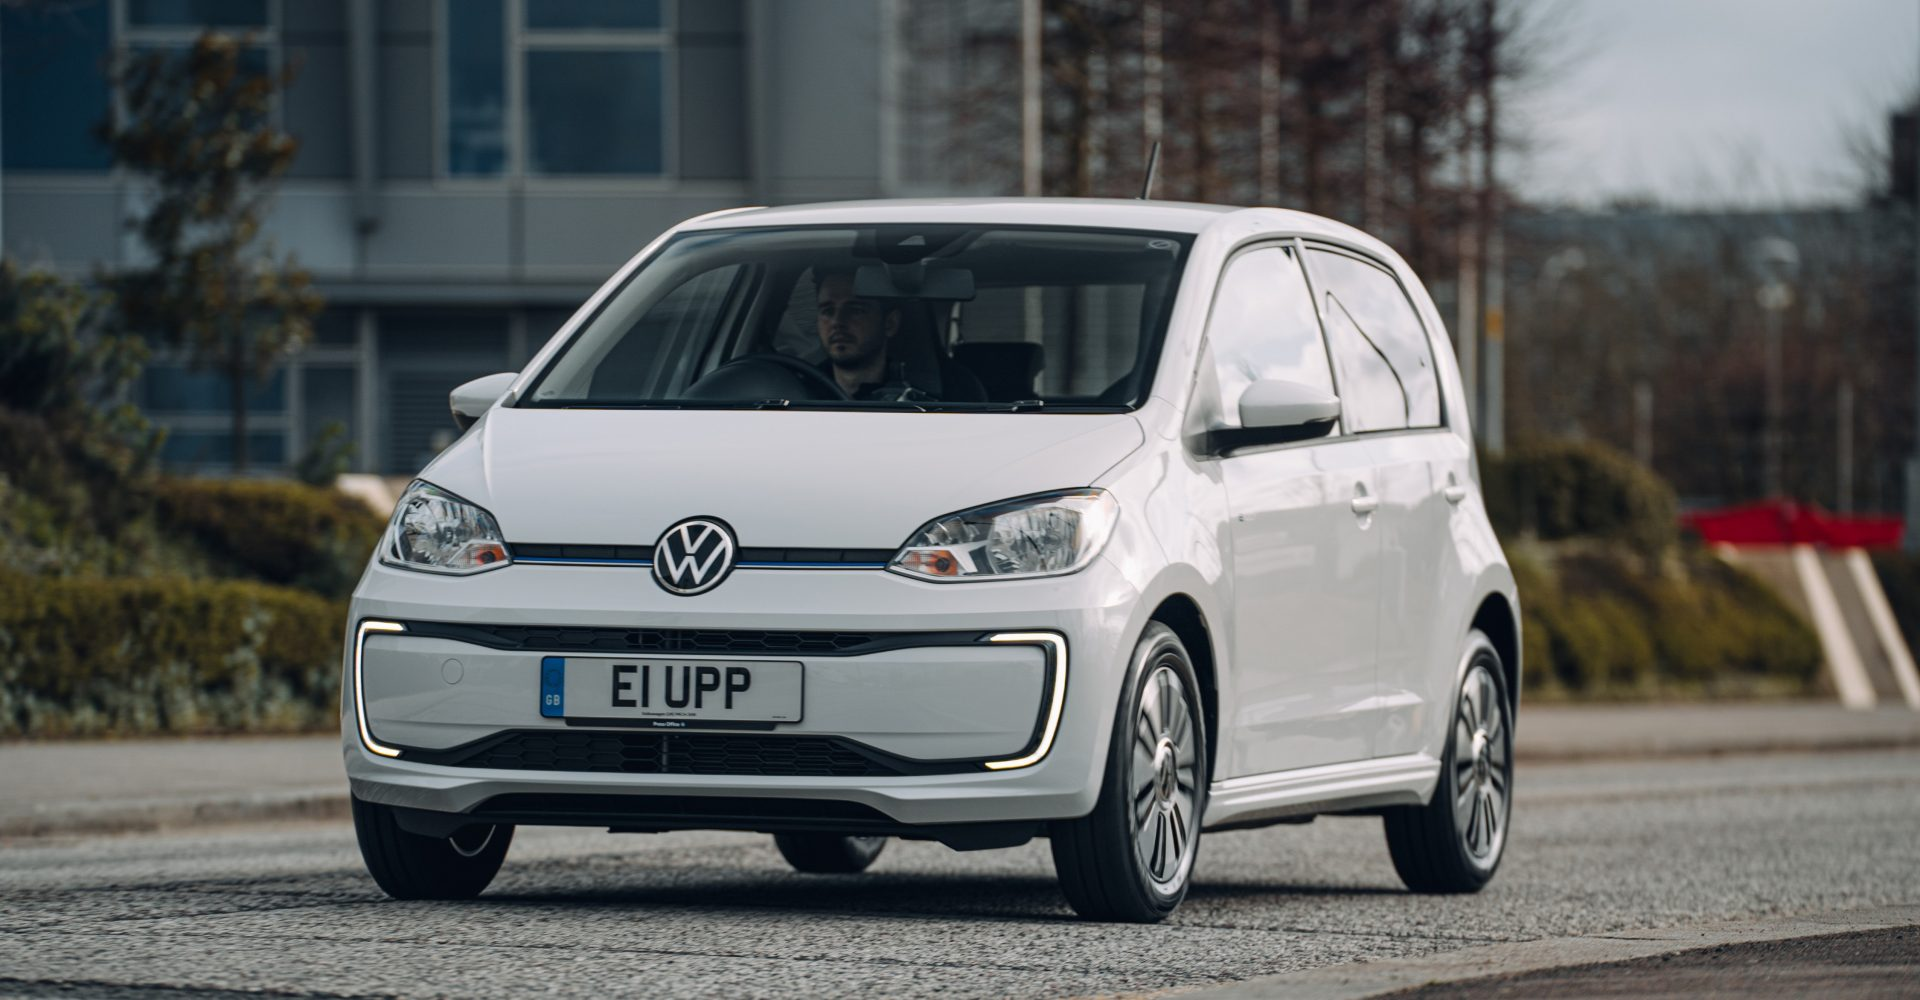 First Drive: The Volkswagen e-Up! brings fun to the EV segment